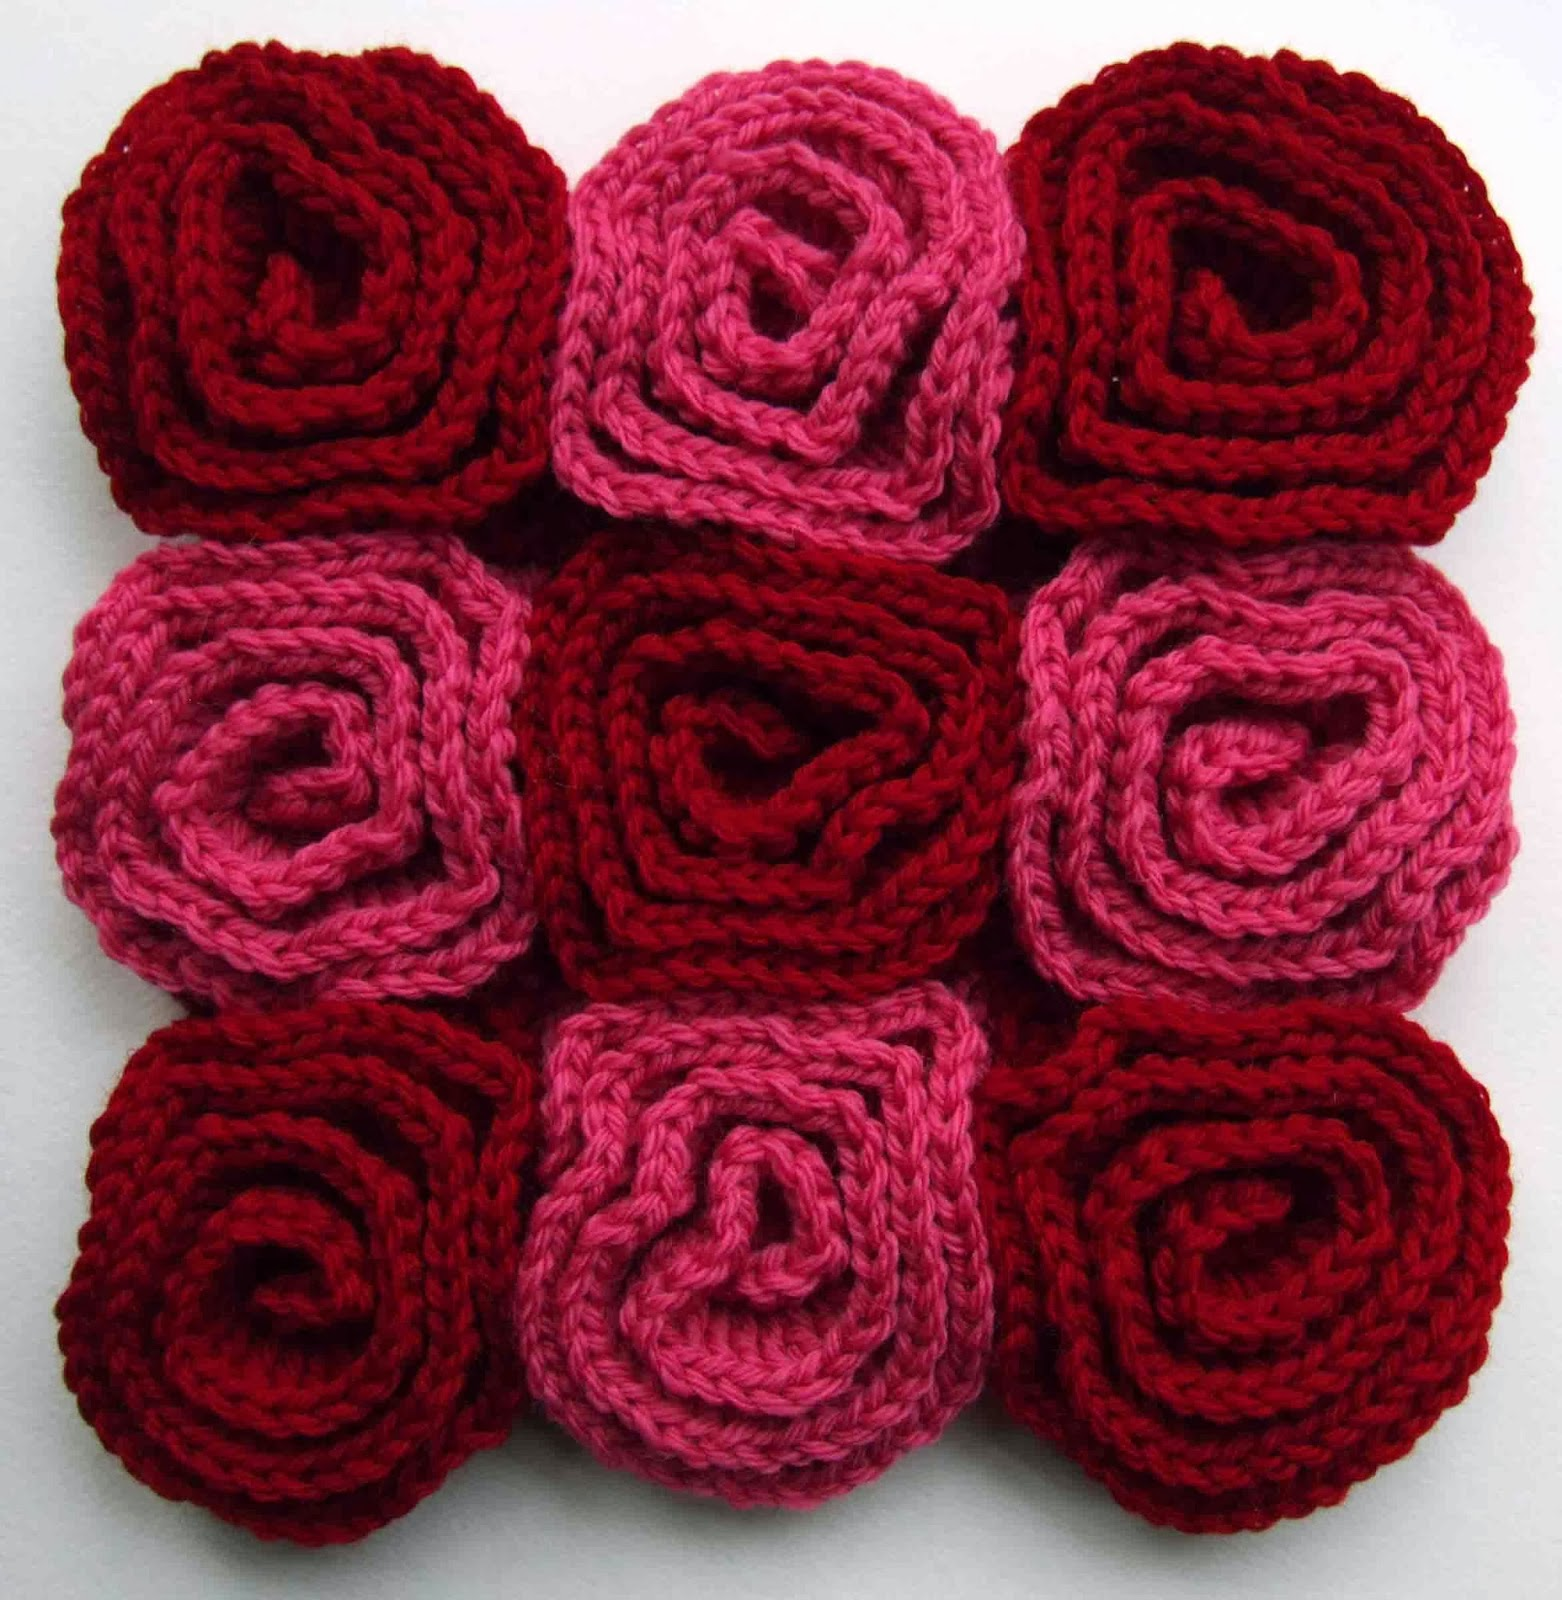 WoolnHook: Rose Square Crochet Pattern